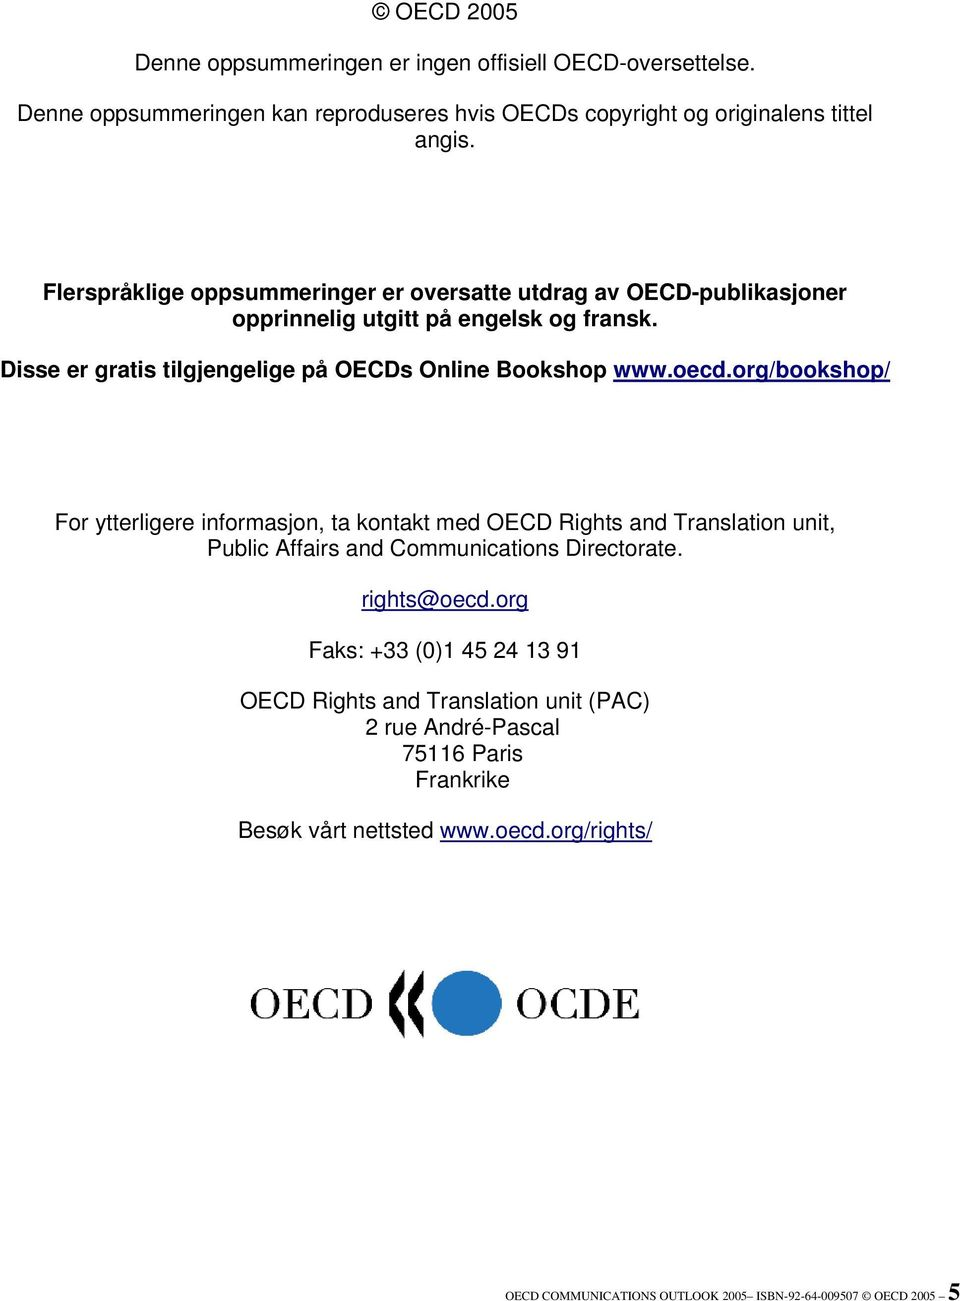 oecd.org/bookshop/ For ytterligere informasjon, ta kontakt med OECD Rights and Translation unit, Public Affairs and Communications Directorate. rights@oecd.